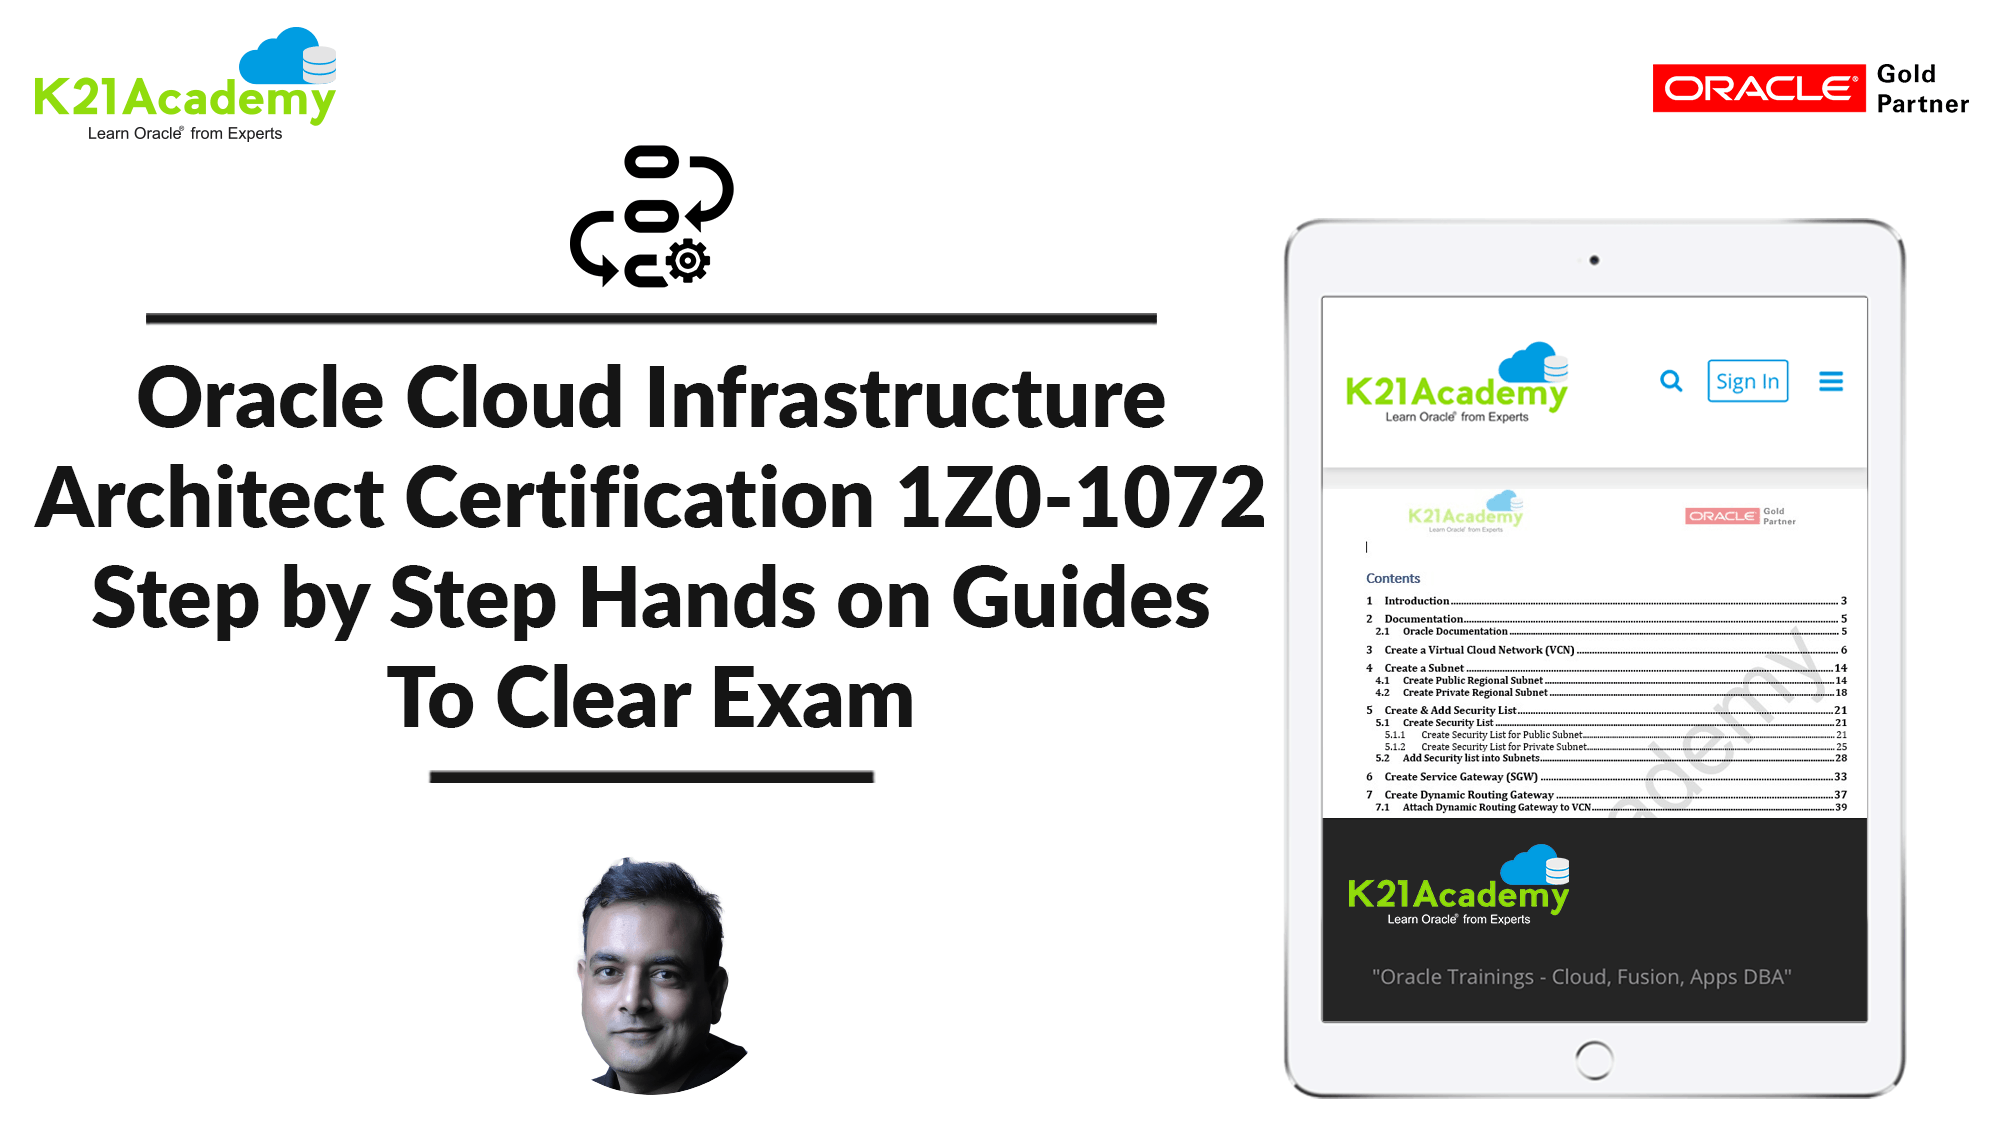 Oracle Cloud Infra Architect Certification 1Z0-1072: Step by Step Hands-On Guides To Clear Exam